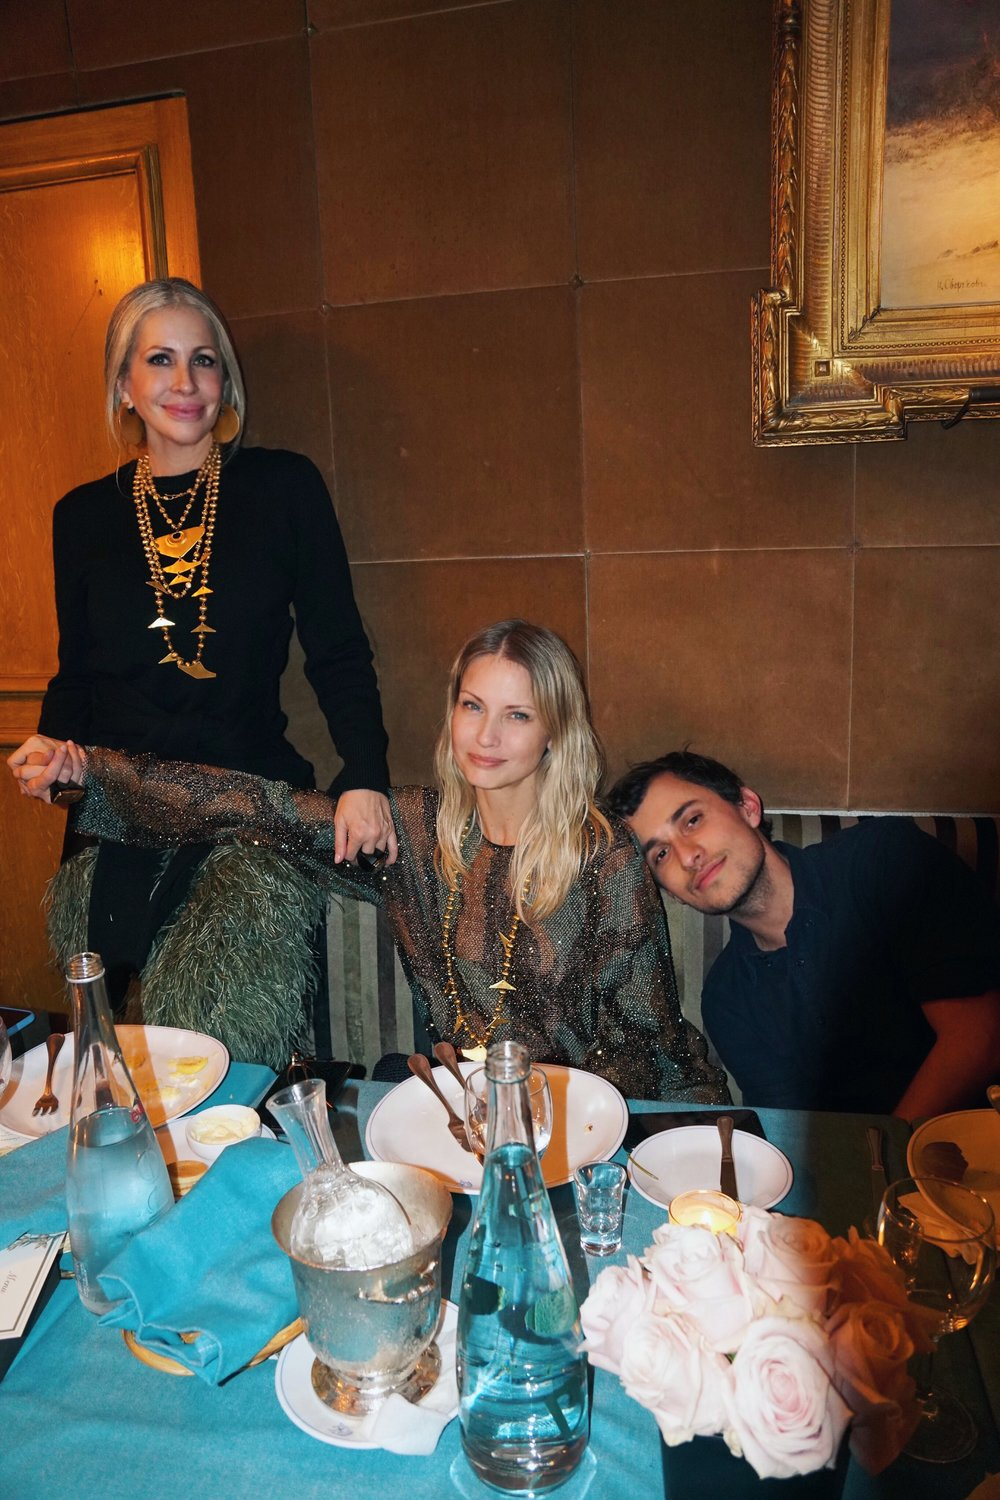 Carmen, Farfetch Chief Fashion Officer Holli Rogers, and designer Esteban Cortazar at Caviar Kaspia in Paris.